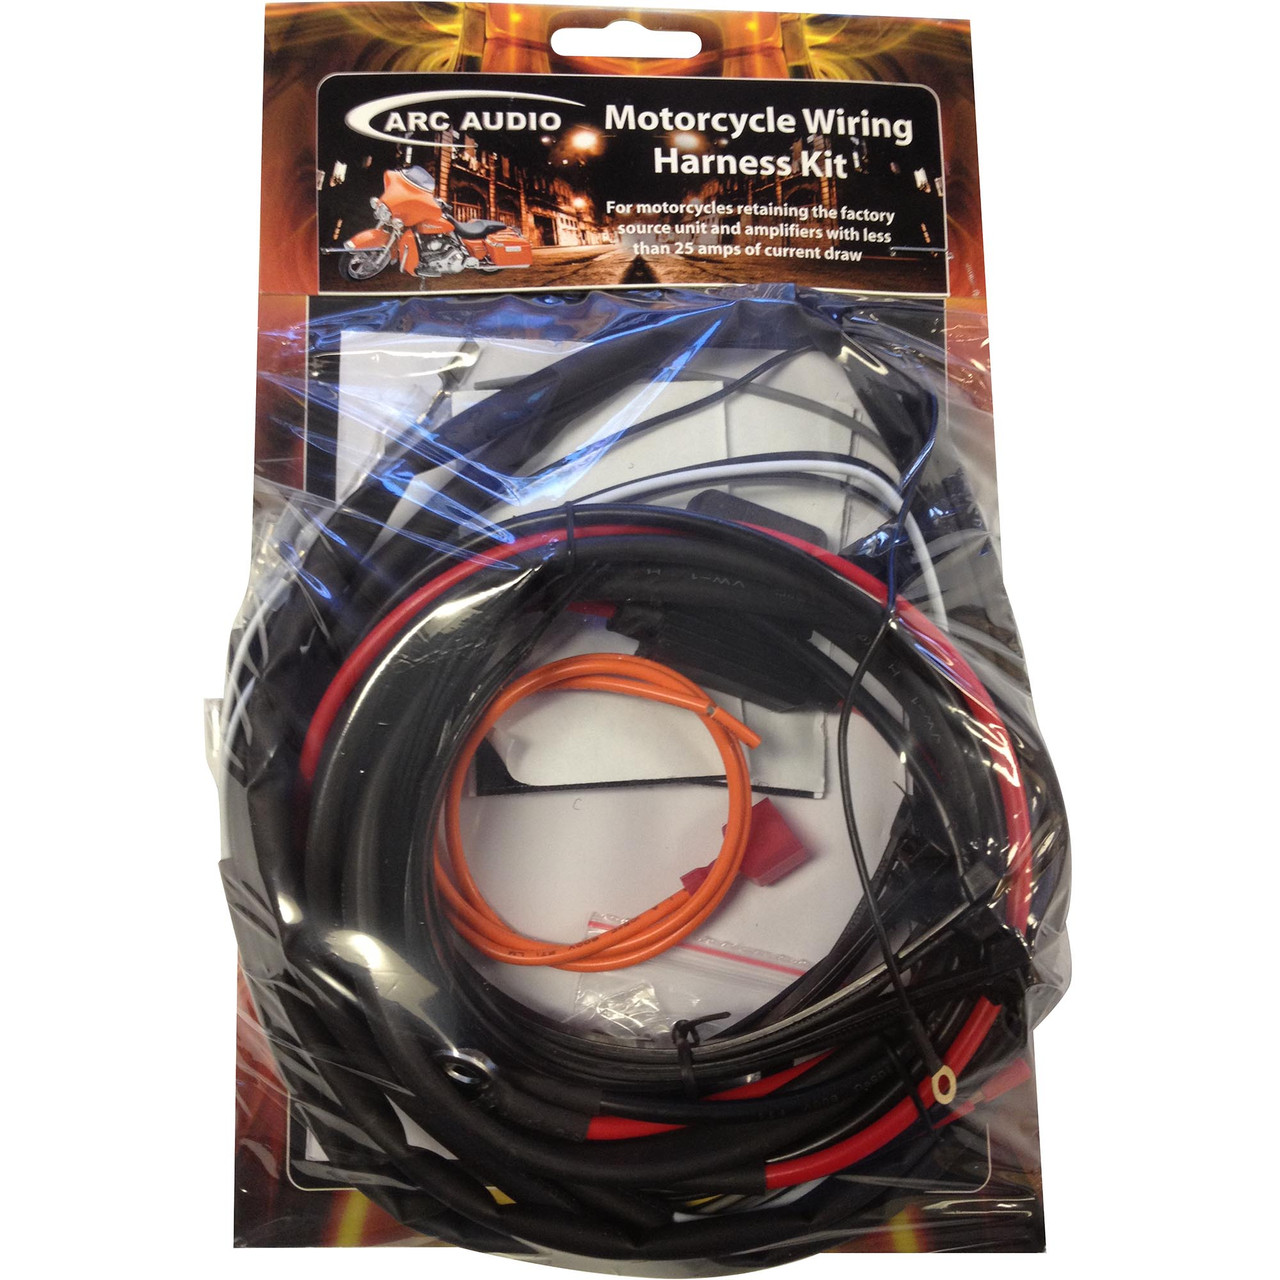 Arc Audio HD-Harness KS125.2BX2 Wiring Kit For Harley Davidson ... on brake lights for motorcycles, side marker lights for motorcycles, spark plugs for motorcycles, led tail lights for motorcycles, headlight bulbs for motorcycles, battery box for motorcycles, ignition switches for motorcycles, rolling chassis for motorcycles, license plate holder for motorcycles, electric fan for motorcycles, led light kit for motorcycles, oil lines for motorcycles, aftermarket headlights for motorcycles, wire connectors for motorcycles, rear turn signals for motorcycles, led strobe lights for motorcycles, fuel injection kits for motorcycles, cigarette lighter for motorcycles, front forks for motorcycles, throttle control for motorcycles,